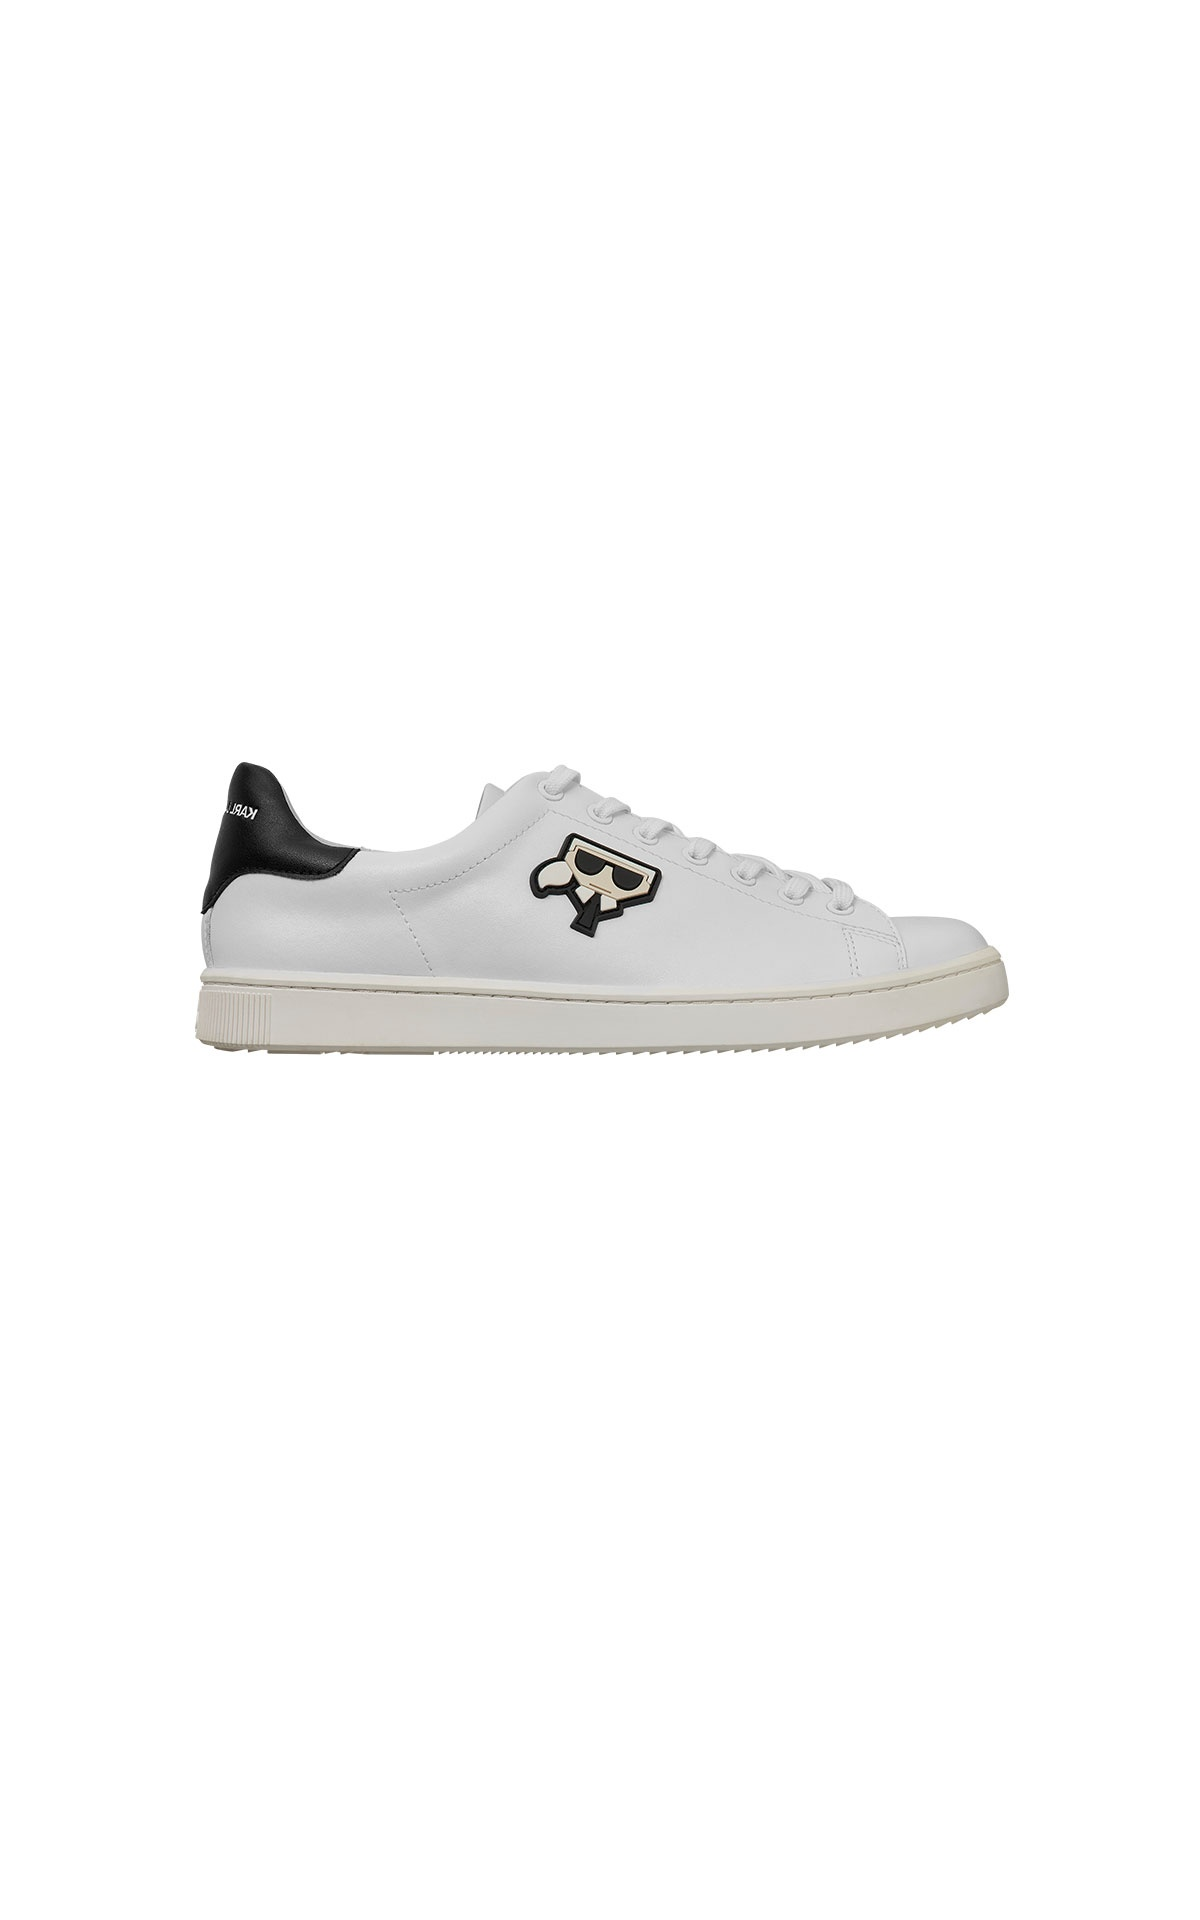 La Vallée Village Karl Lagerfeld Karl sneakers